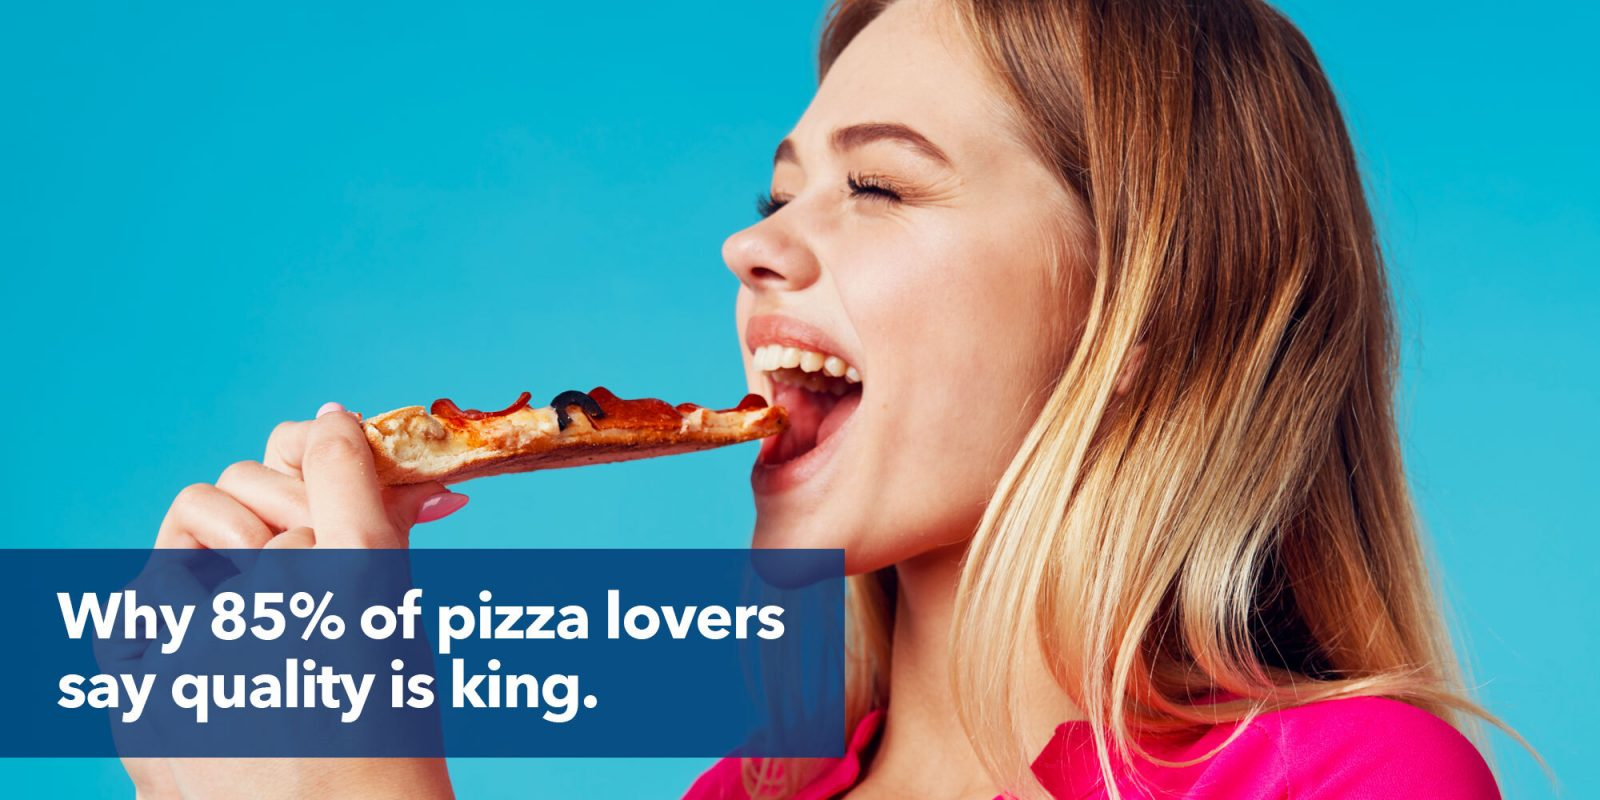 Why 85% of pizza lovers say quality is king.